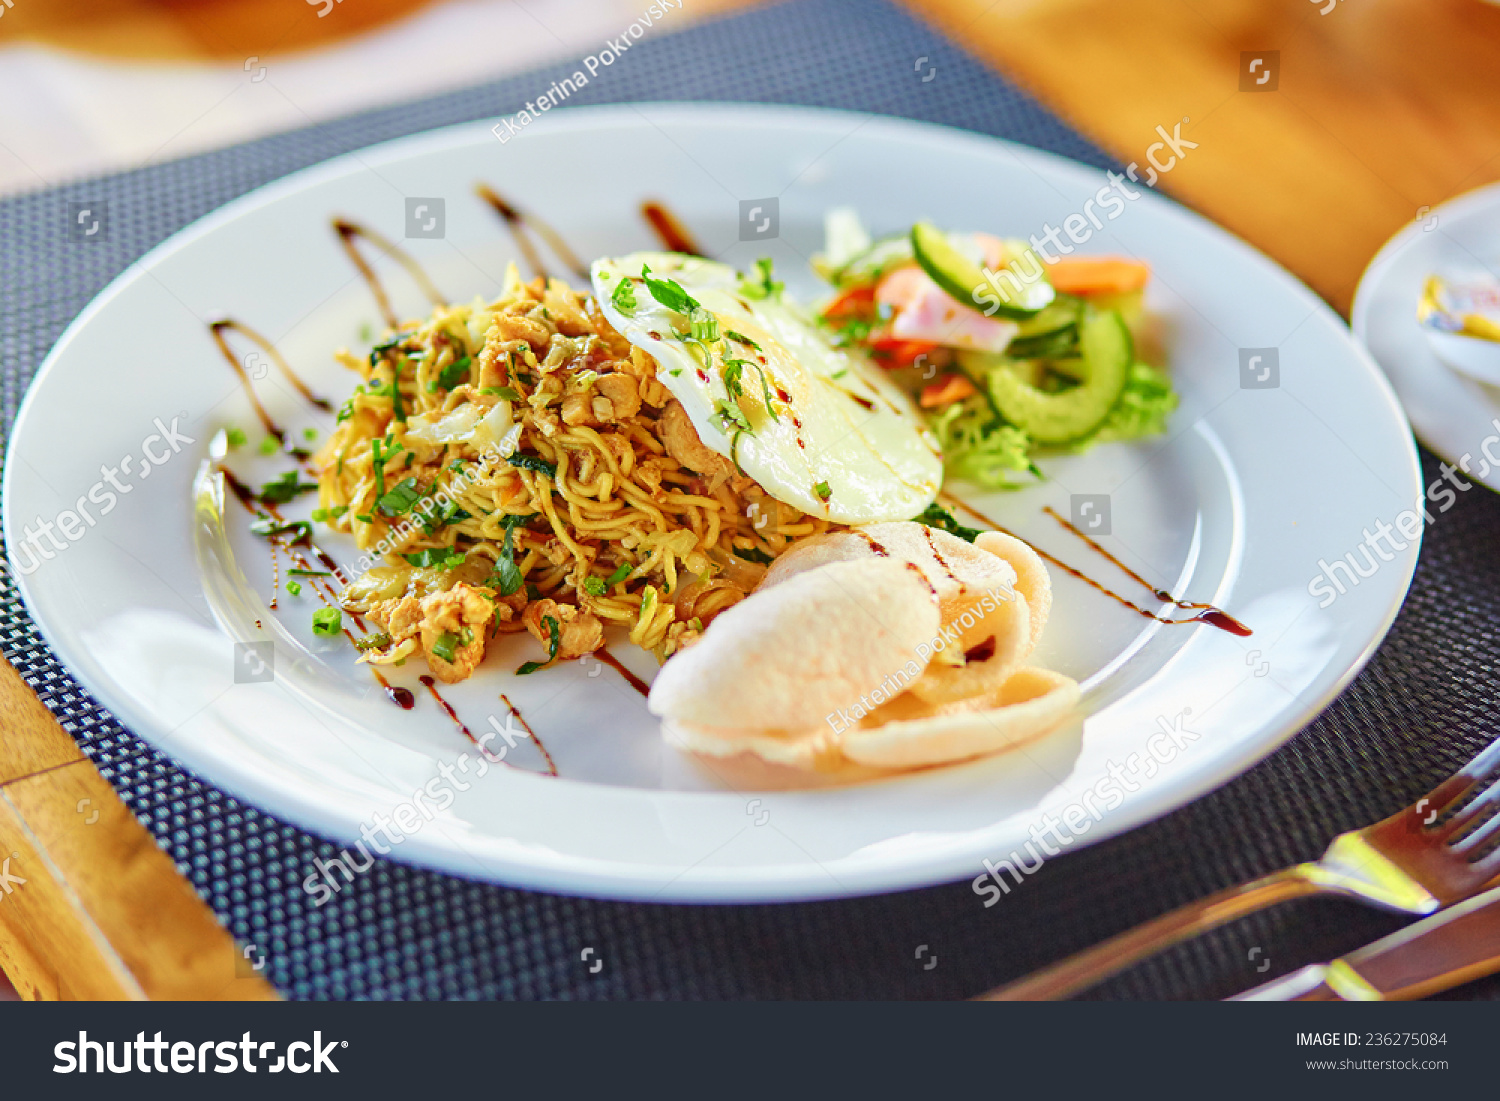 Mie goreng - spicy fried curry instant noodles, traditional Indonesian ...